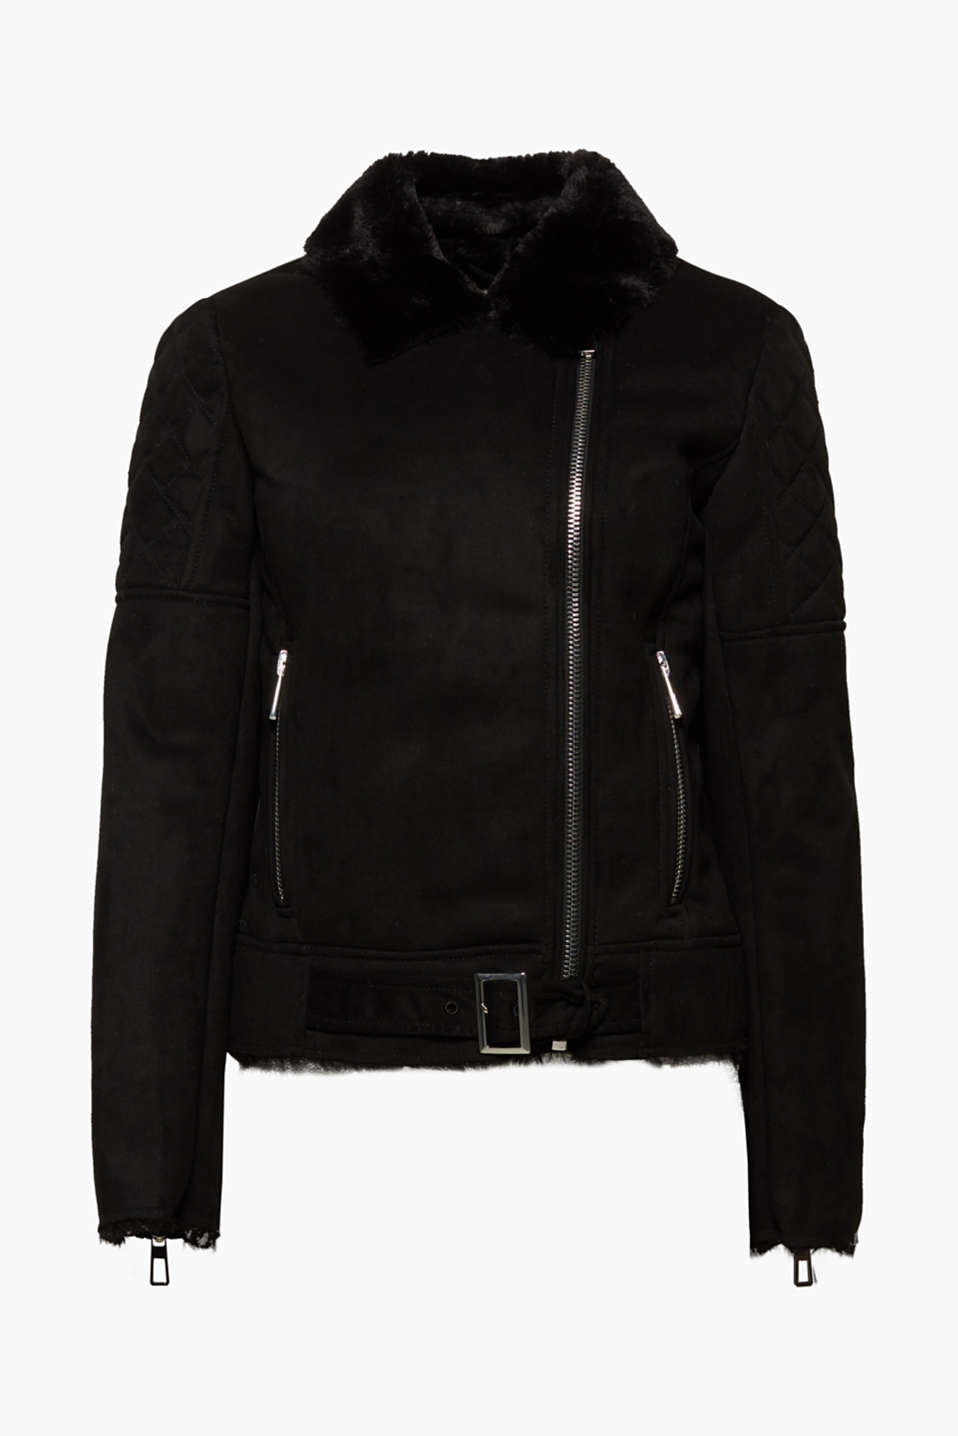 This jacket impresses with its shearling effect and striking zip details, which give the style a rock and roll flair.